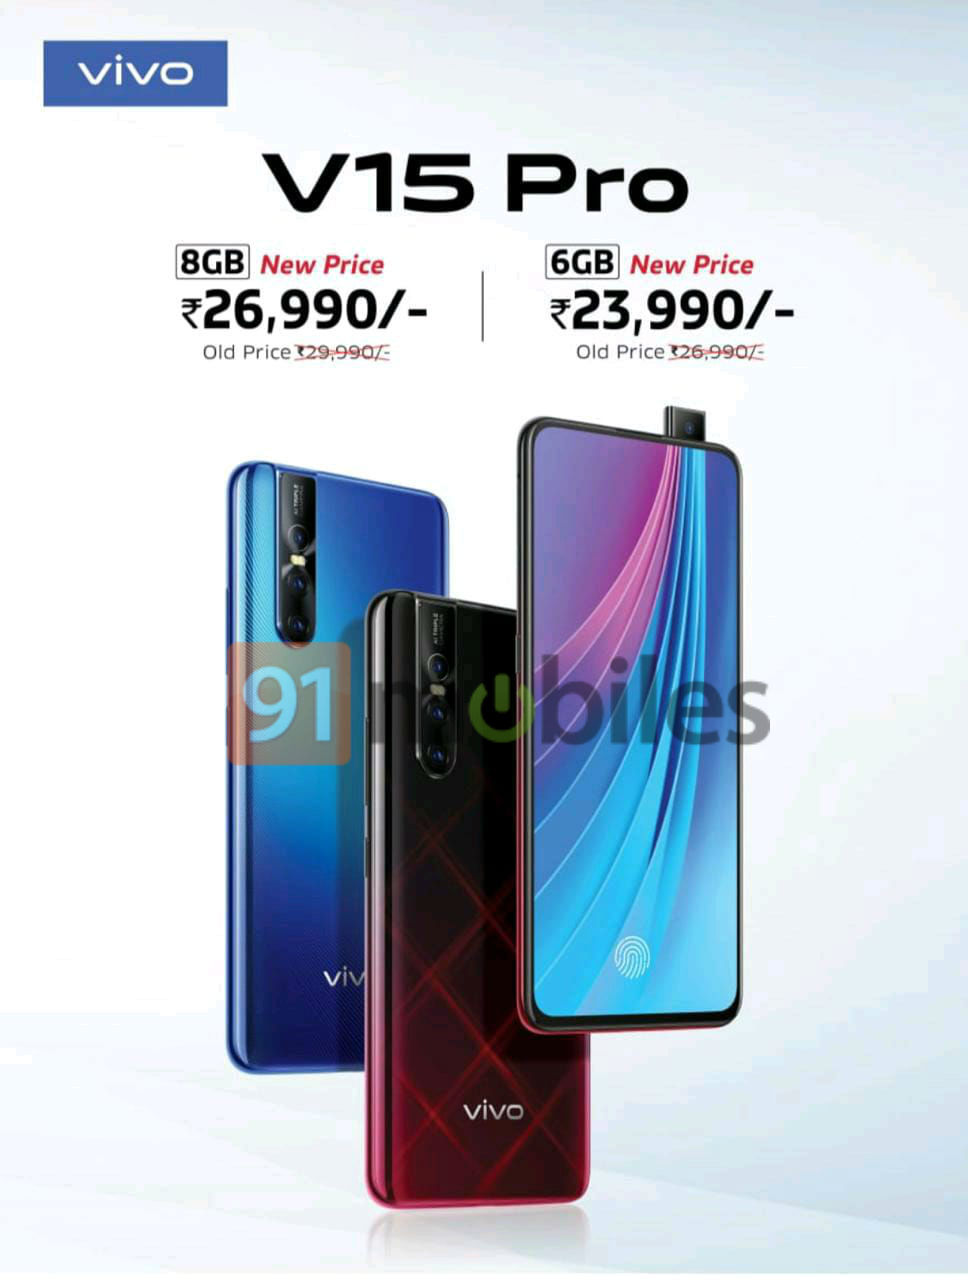 vivo-v15-pro-price-drop-rs-3000-now-available-at-rs-23990